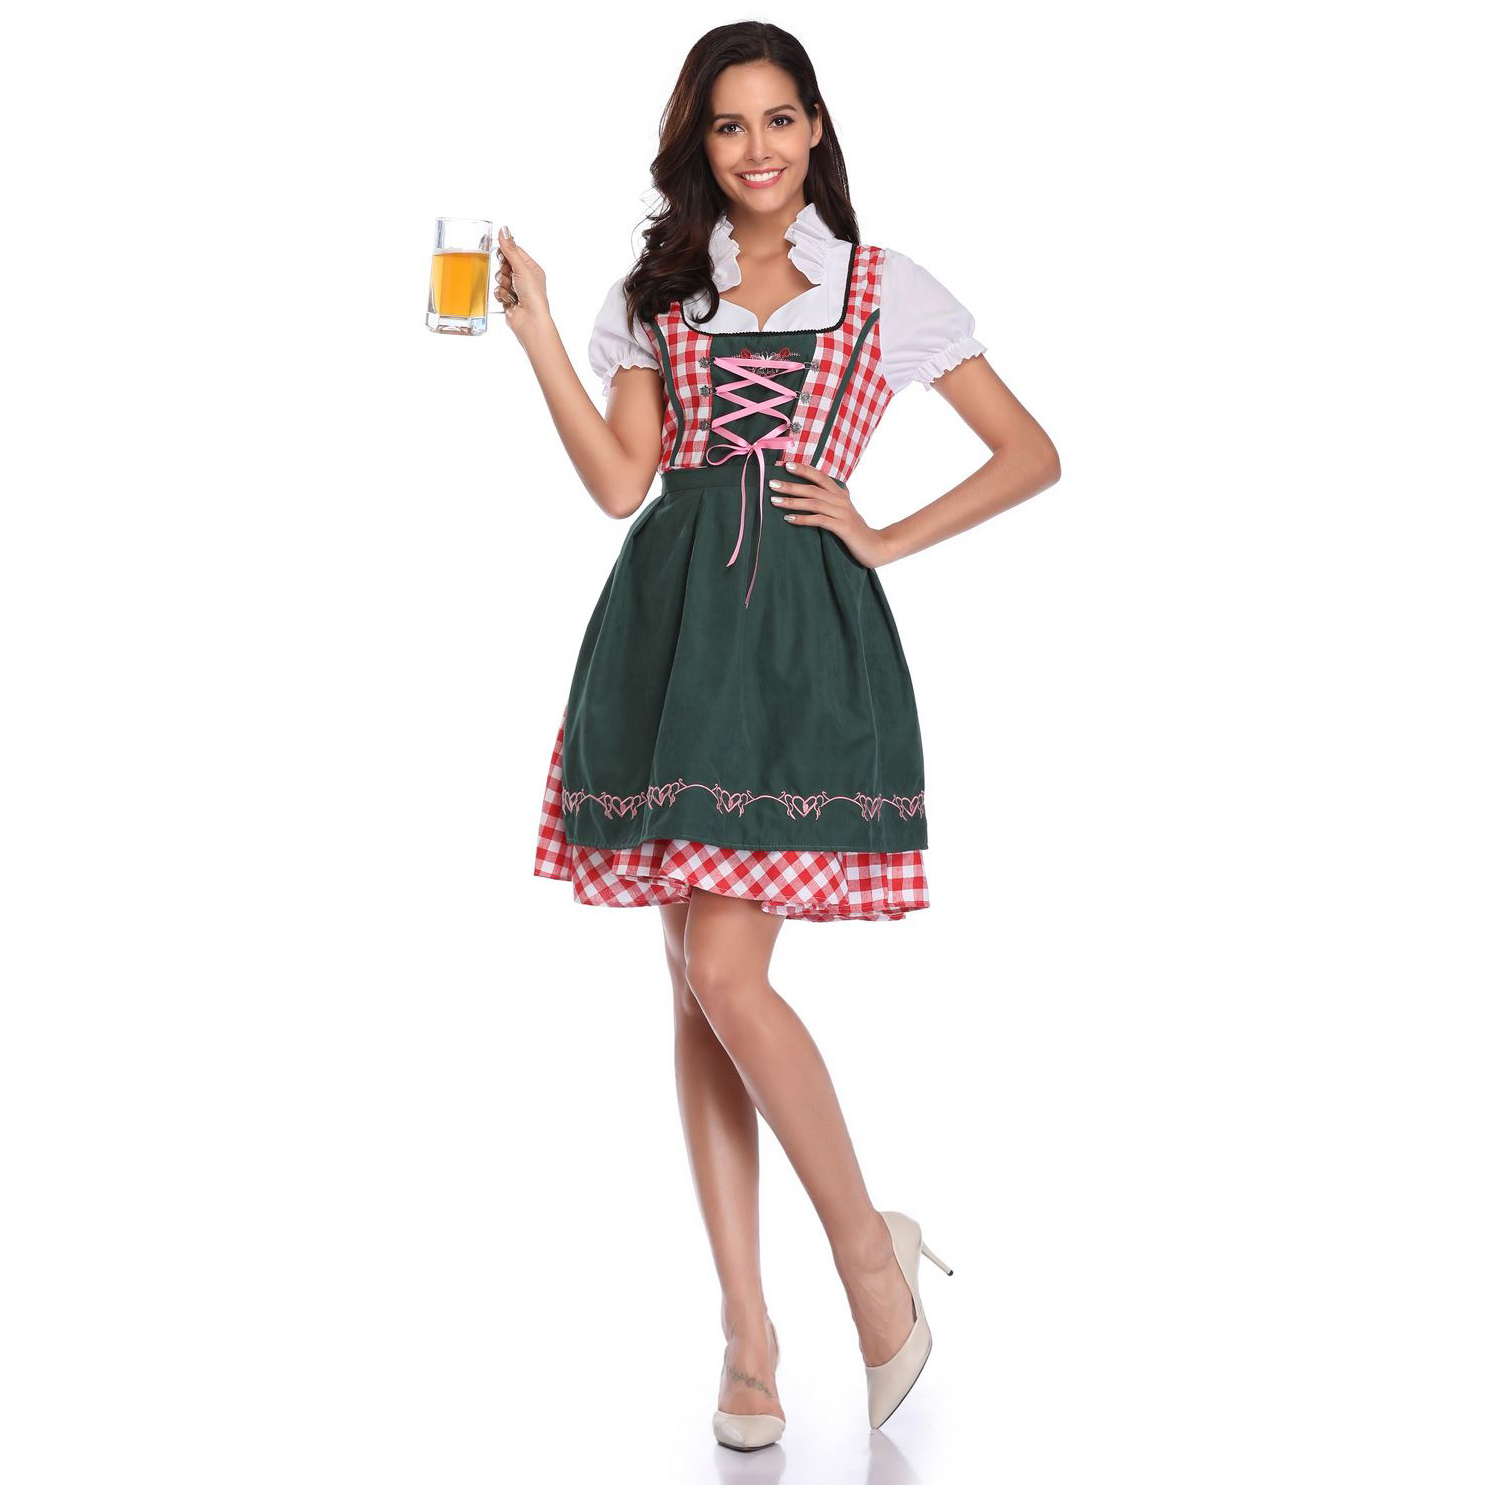 UTMEON S-XXL Sexy Costume Maid Wench Bavarian Fancy Dress Dirndl For Adult Women Beer Girl Oktoberfest Costume